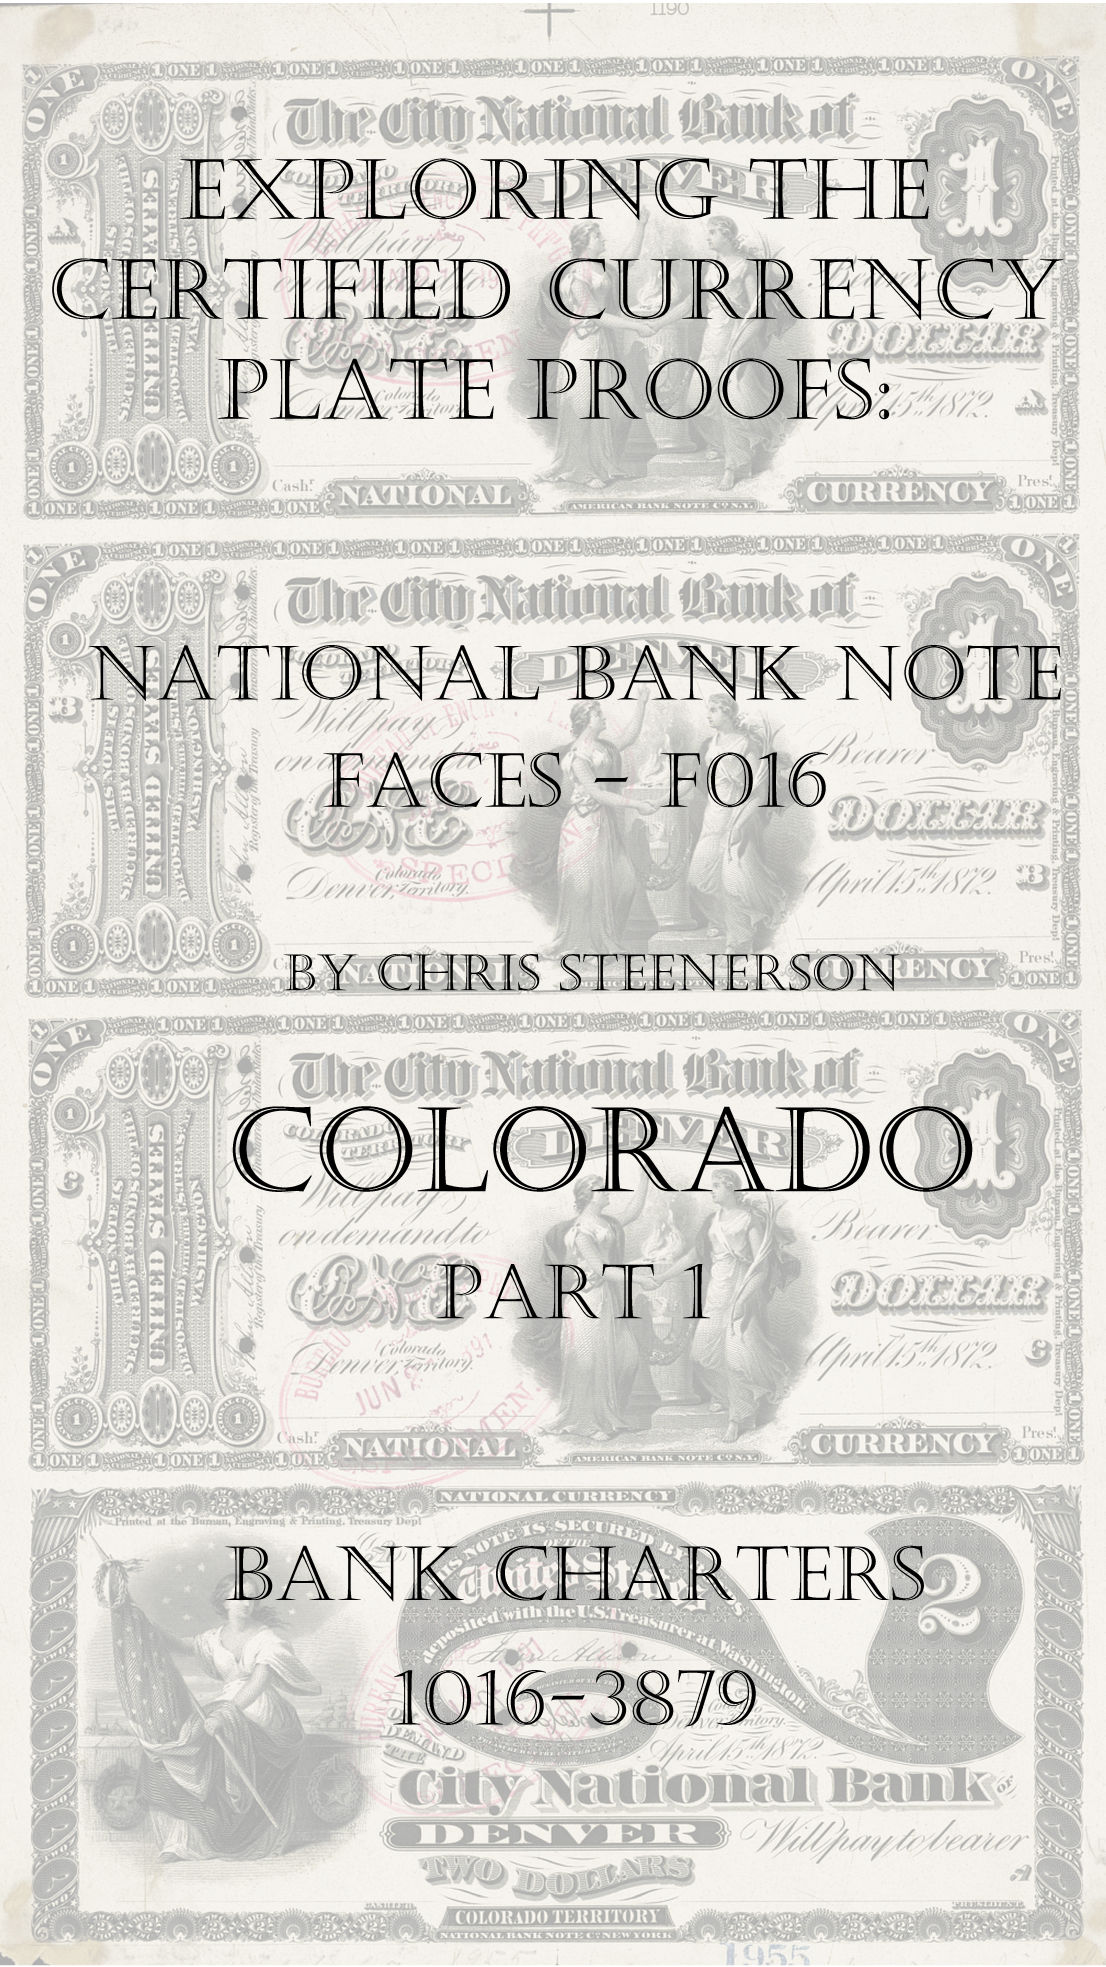 Colorado National Bank Note Currency Proofs